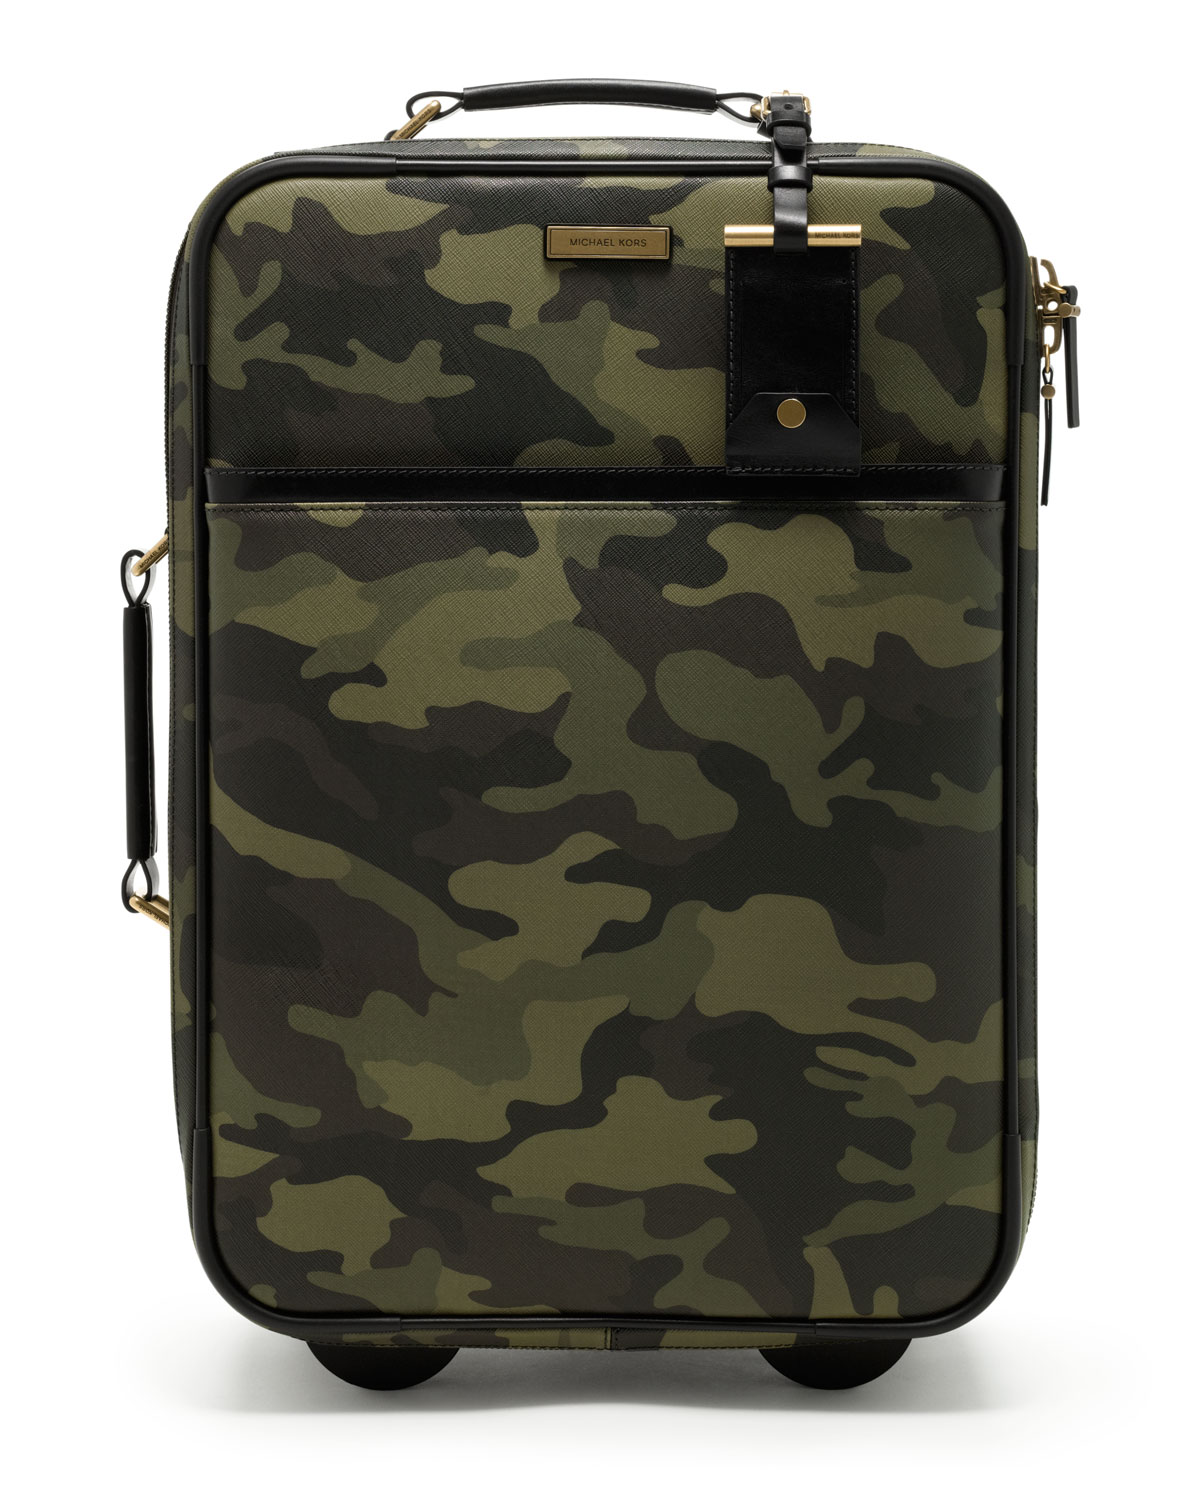 Michael Kors Jet Set Trolley Suitcase In Camo Green For